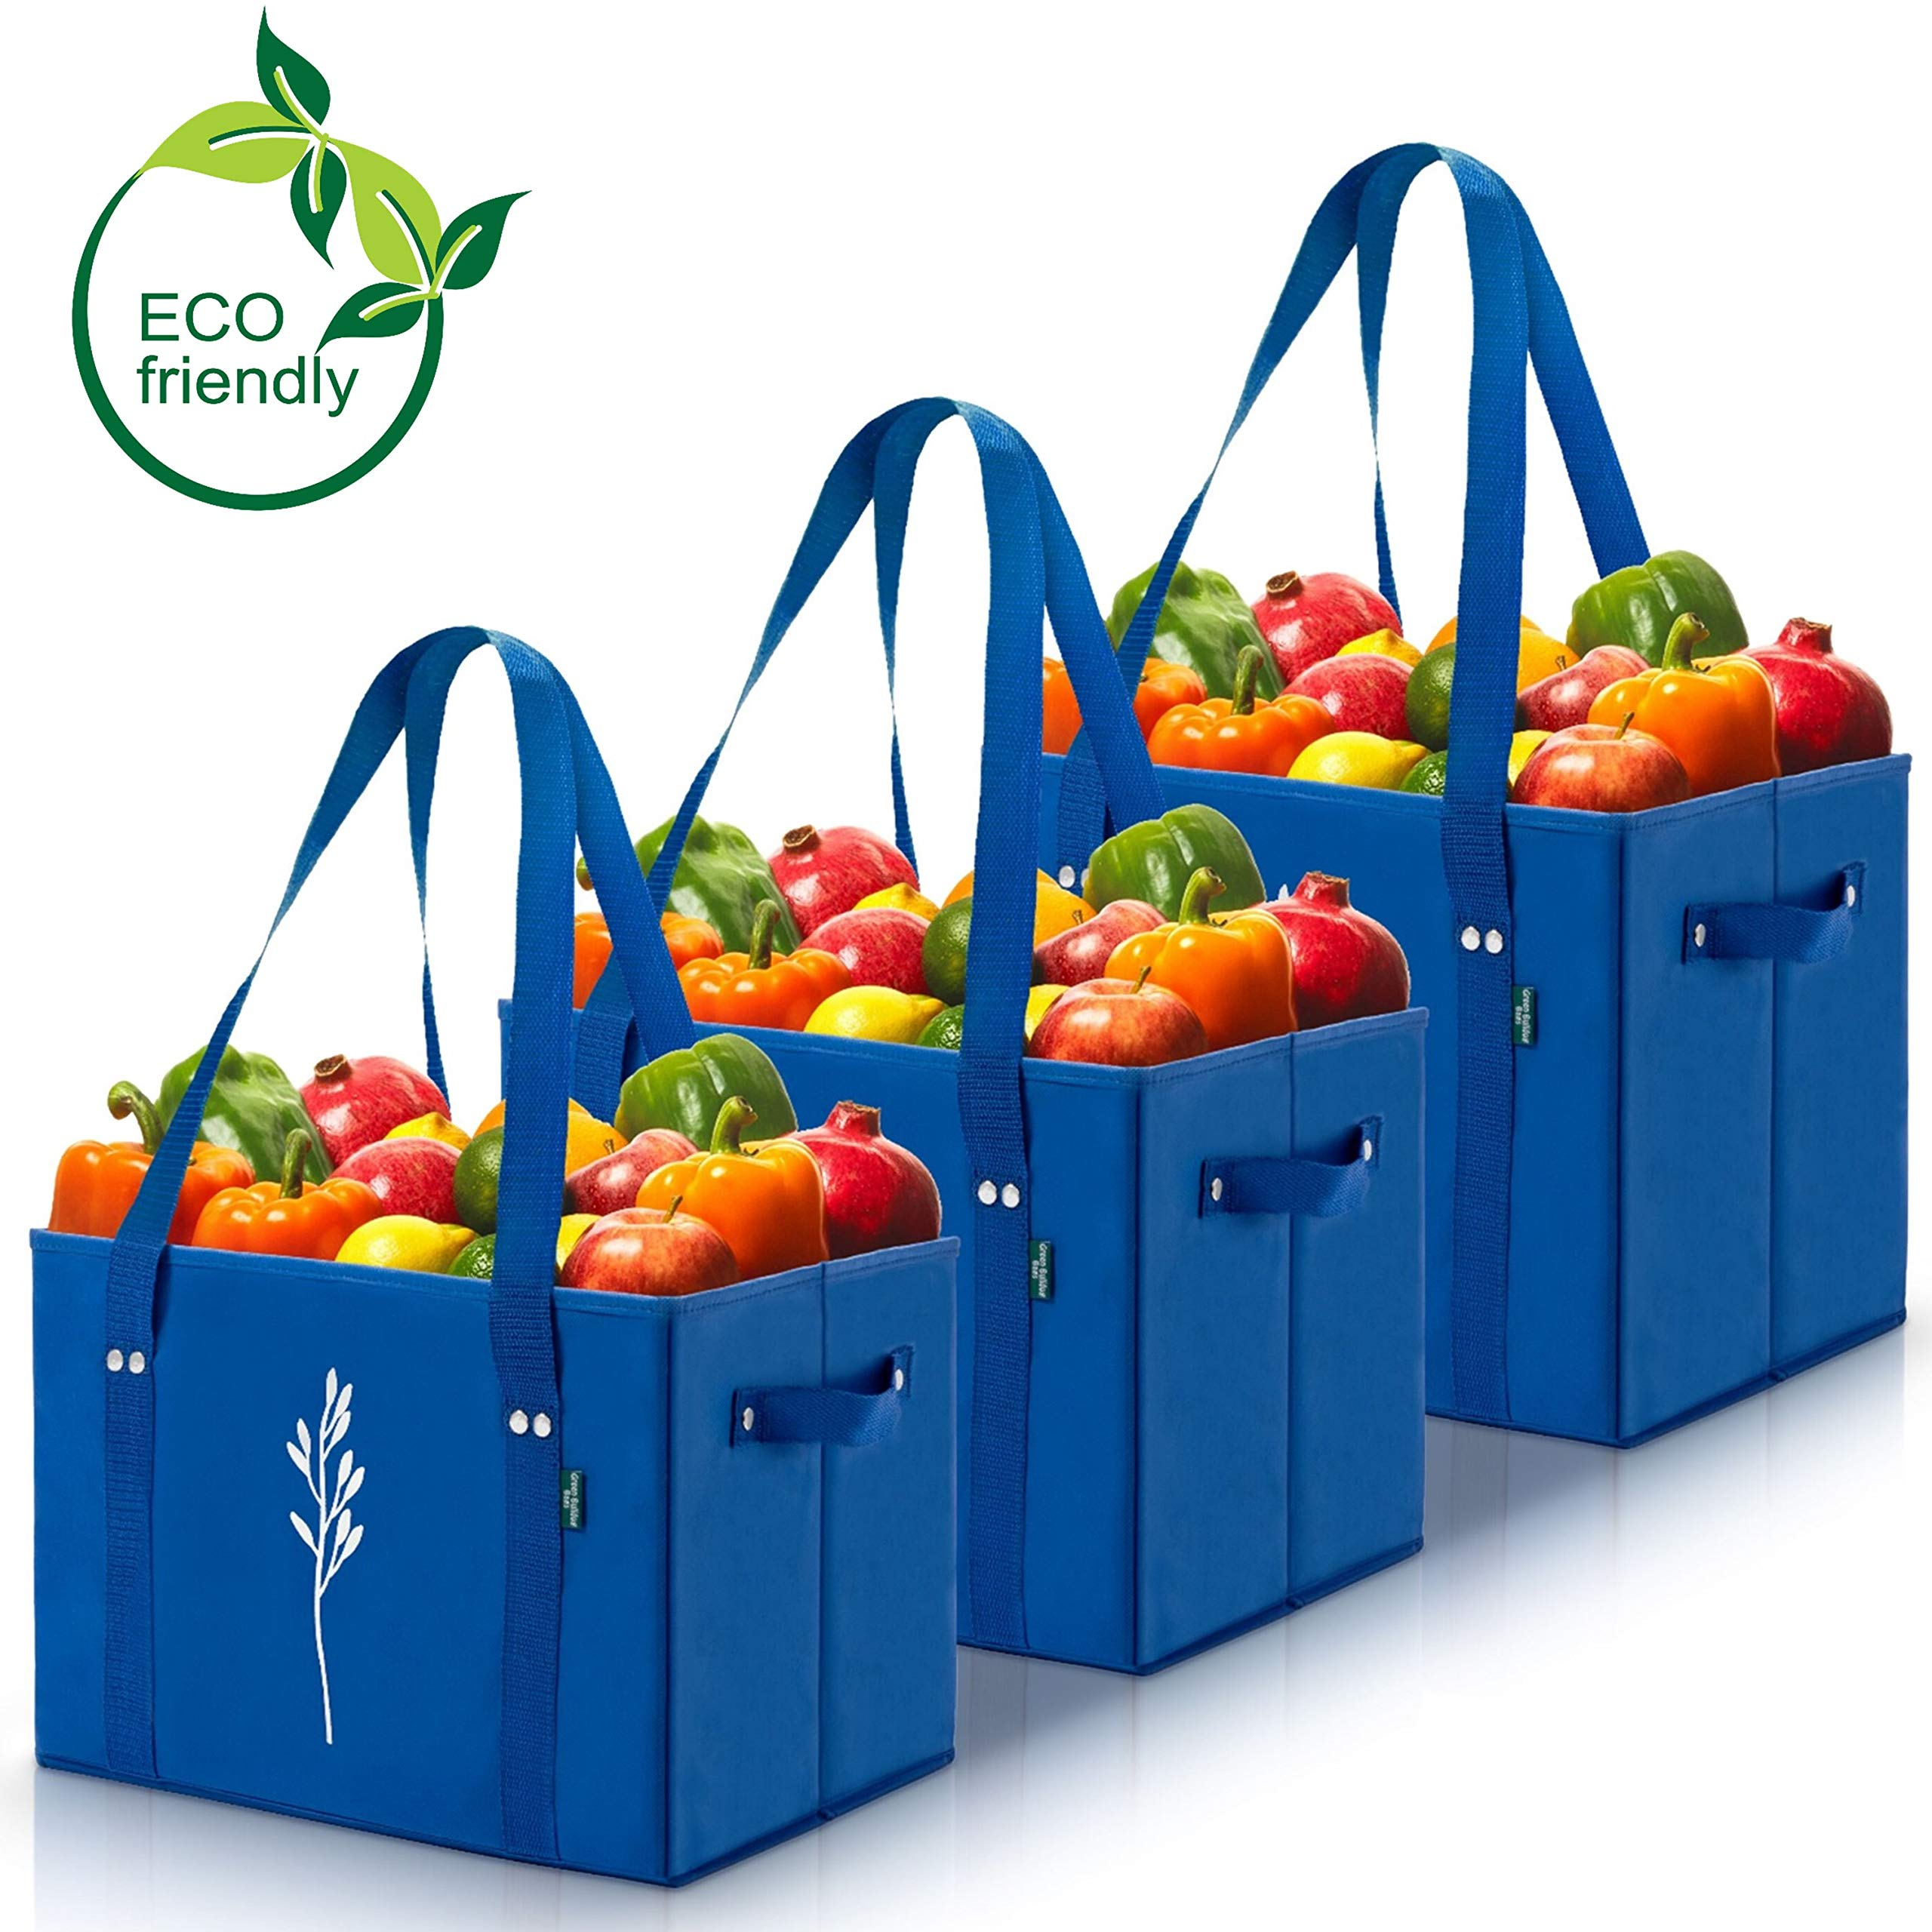 Green Eco Friendly Collapsible Bags Reinforced